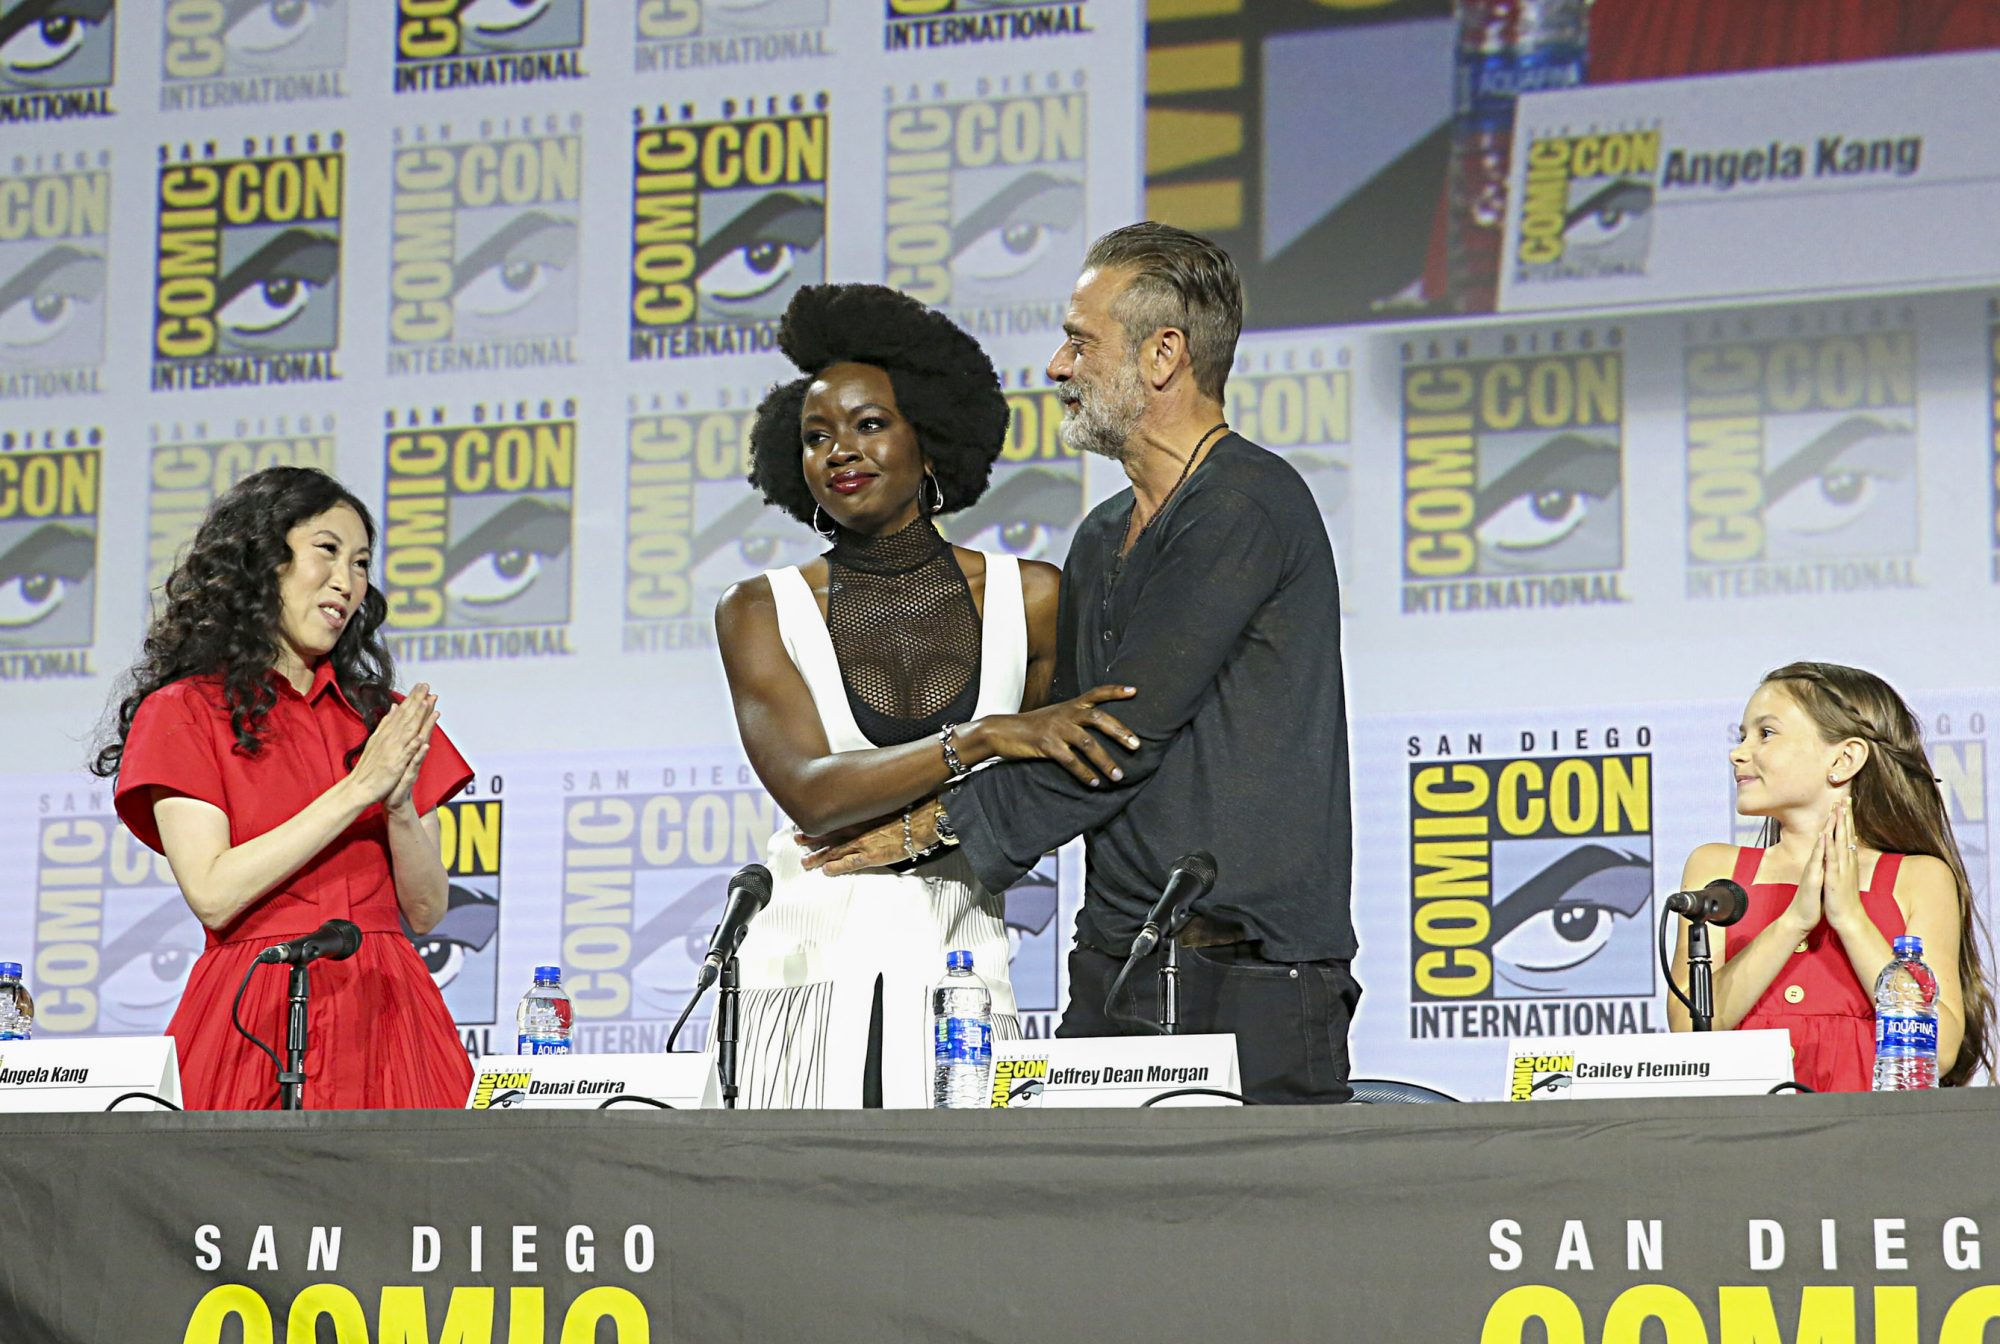 SAN DIEGO, CALIFORNIA - JULY 19: (L-R) Angela Kang, Danai Gurira, Jeffrey Dean Morgan and Cailey Fleming attend The Walking Dead Panel at Comic Con 2019 on July 19, 2019 in San Diego, California. (Photo by Jesse Grant/Getty Images for AMC)